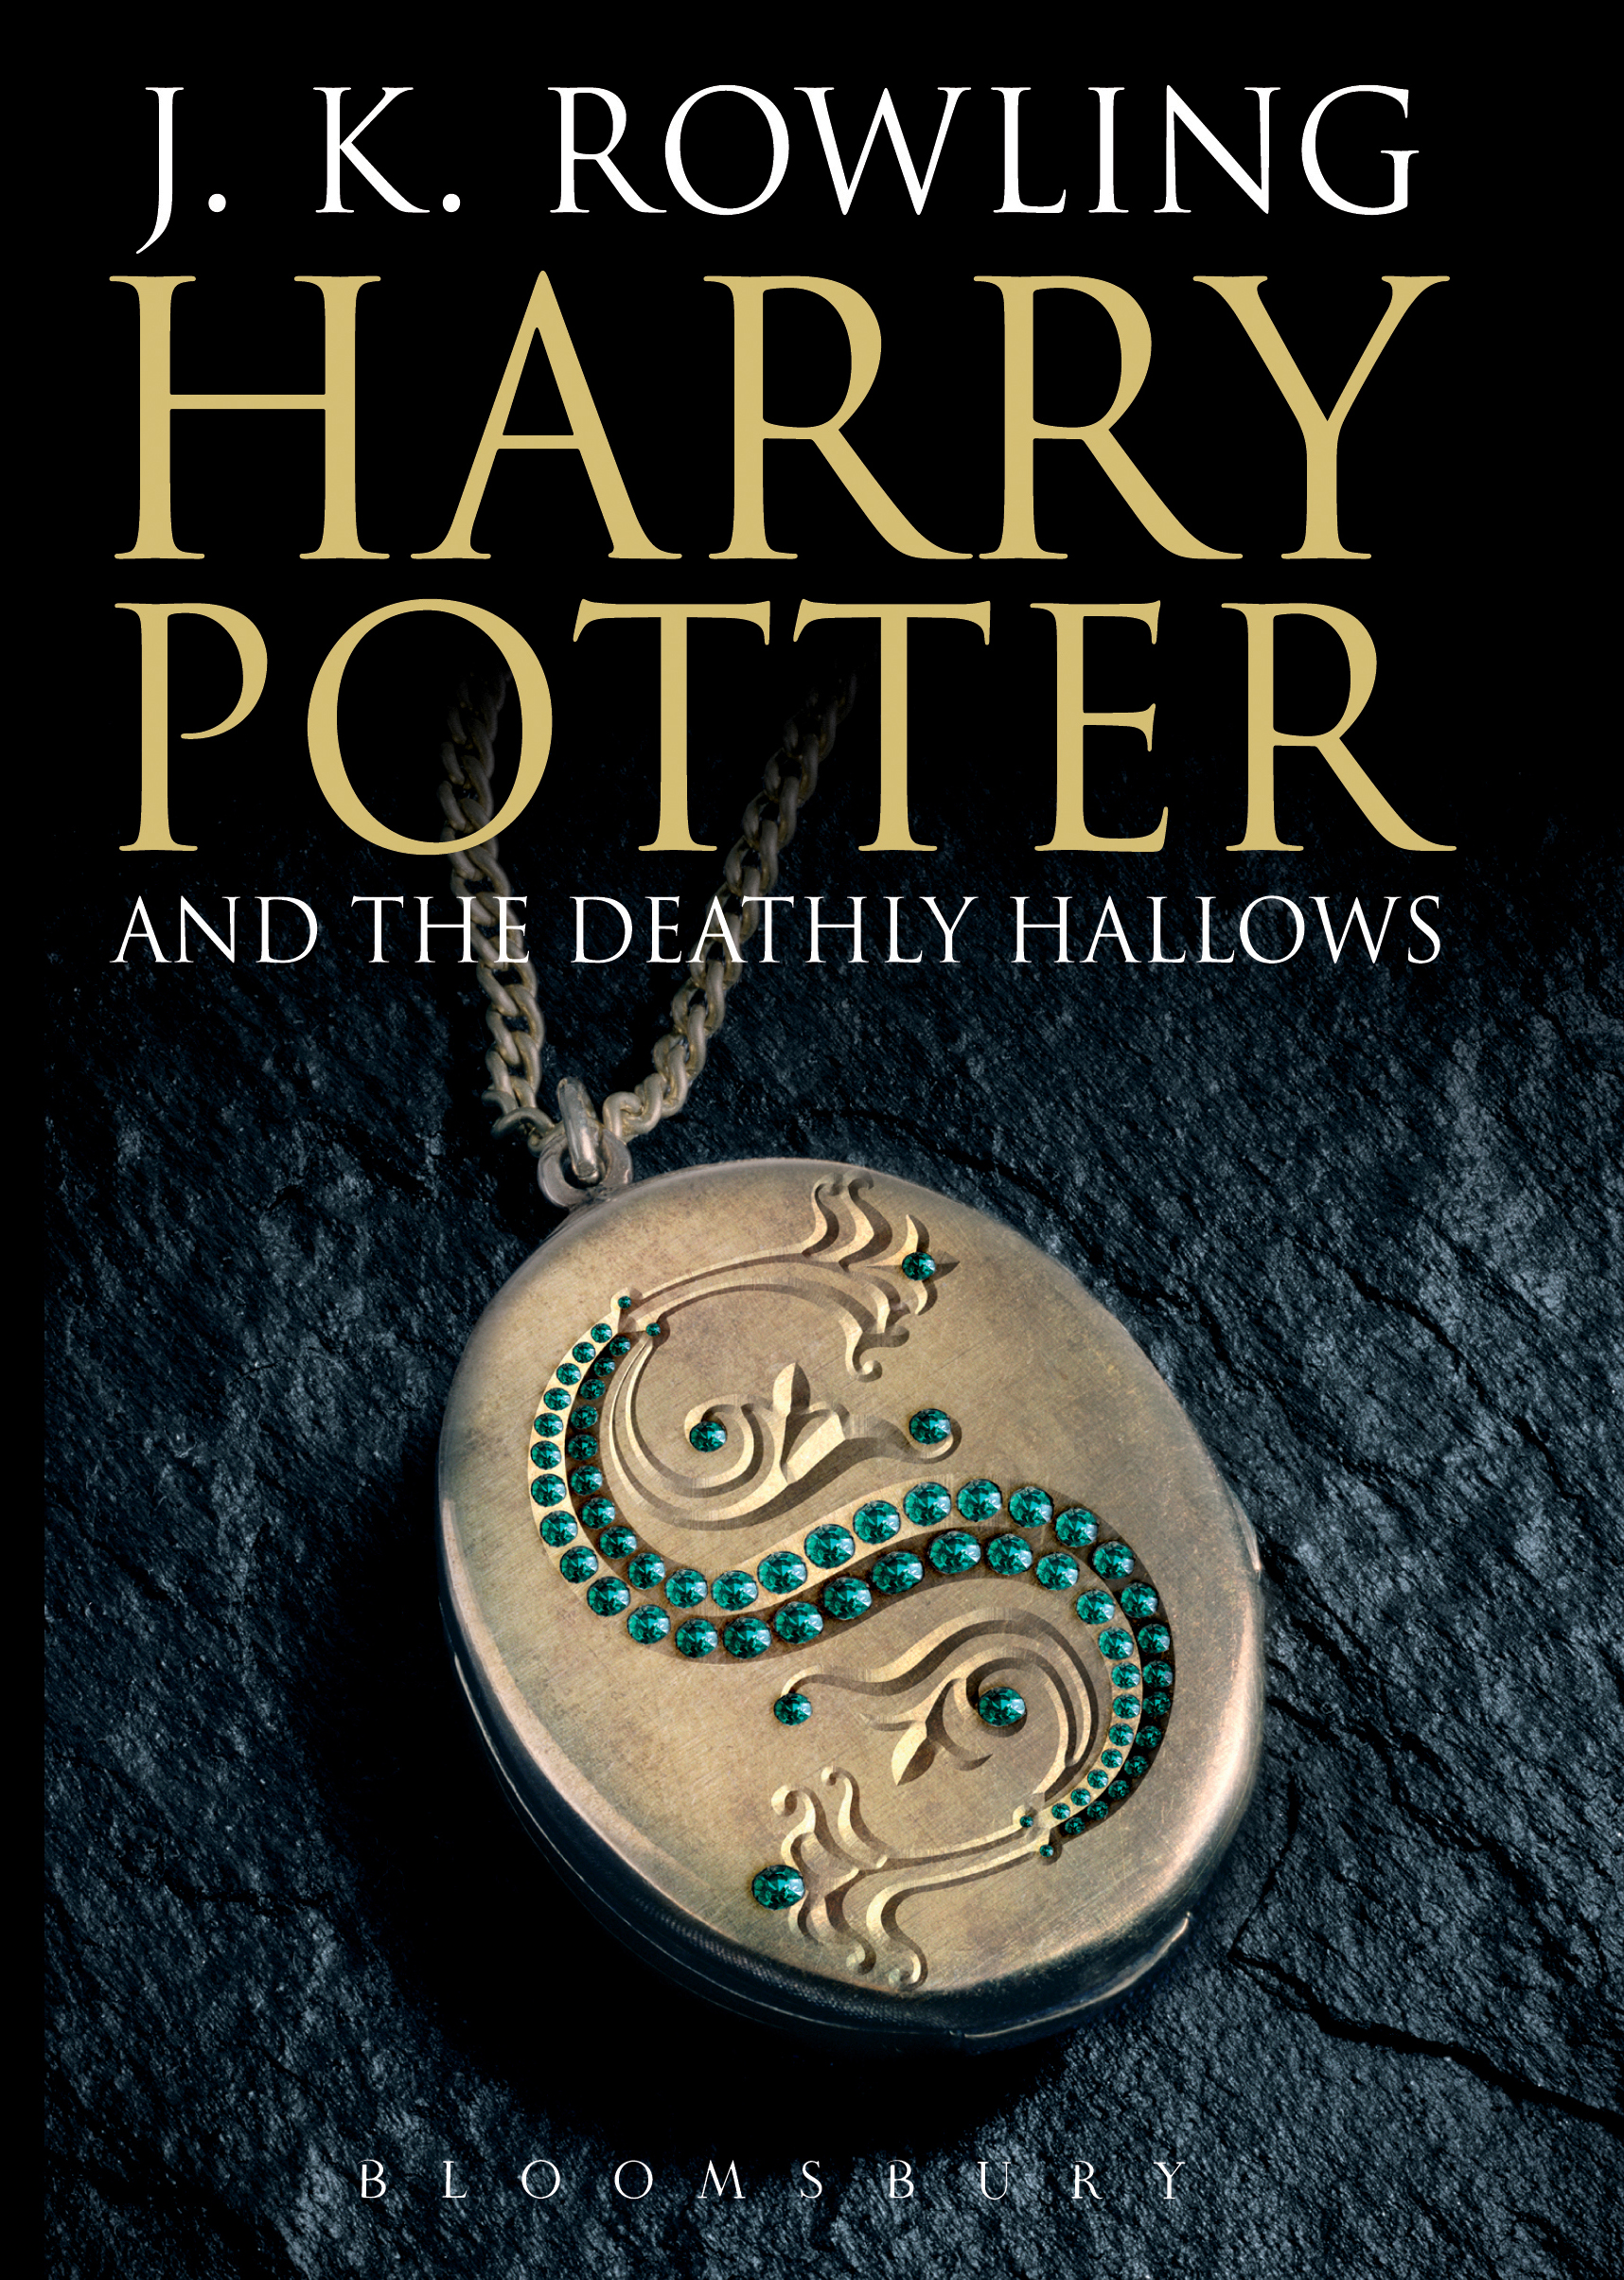 Harry Potter and the Deathly Hallows | Vulpes Libris